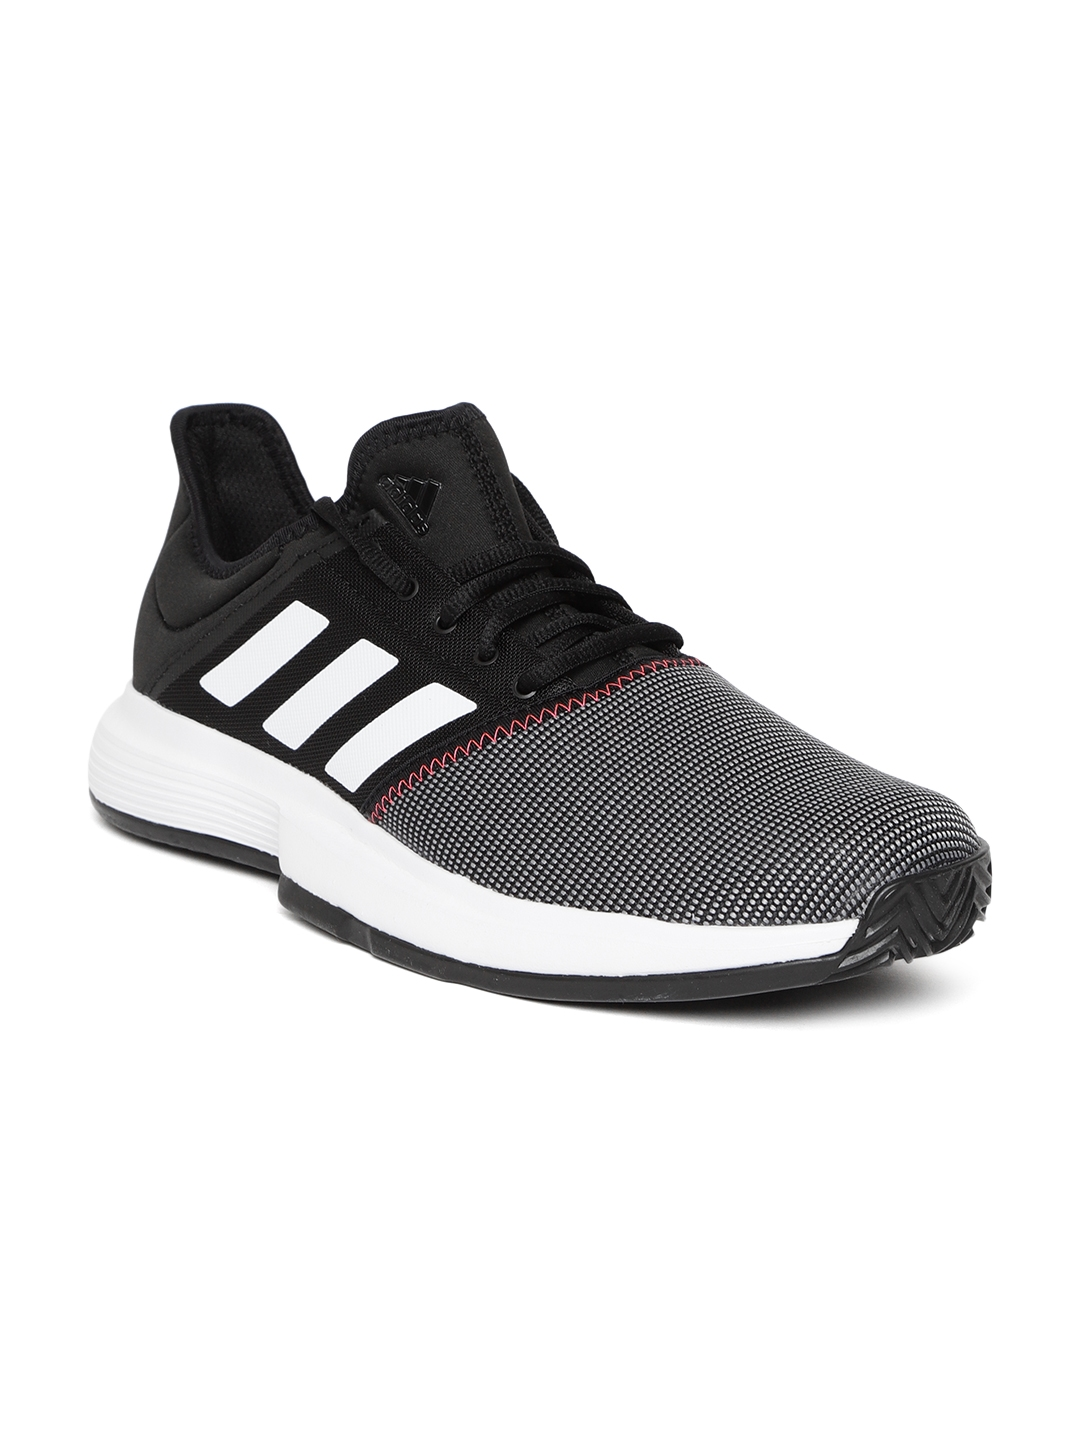 16e094c65e82a Buy ADIDAS Men Black & Grey Gamecourt Tennis Shoes - Sports Shoes ...